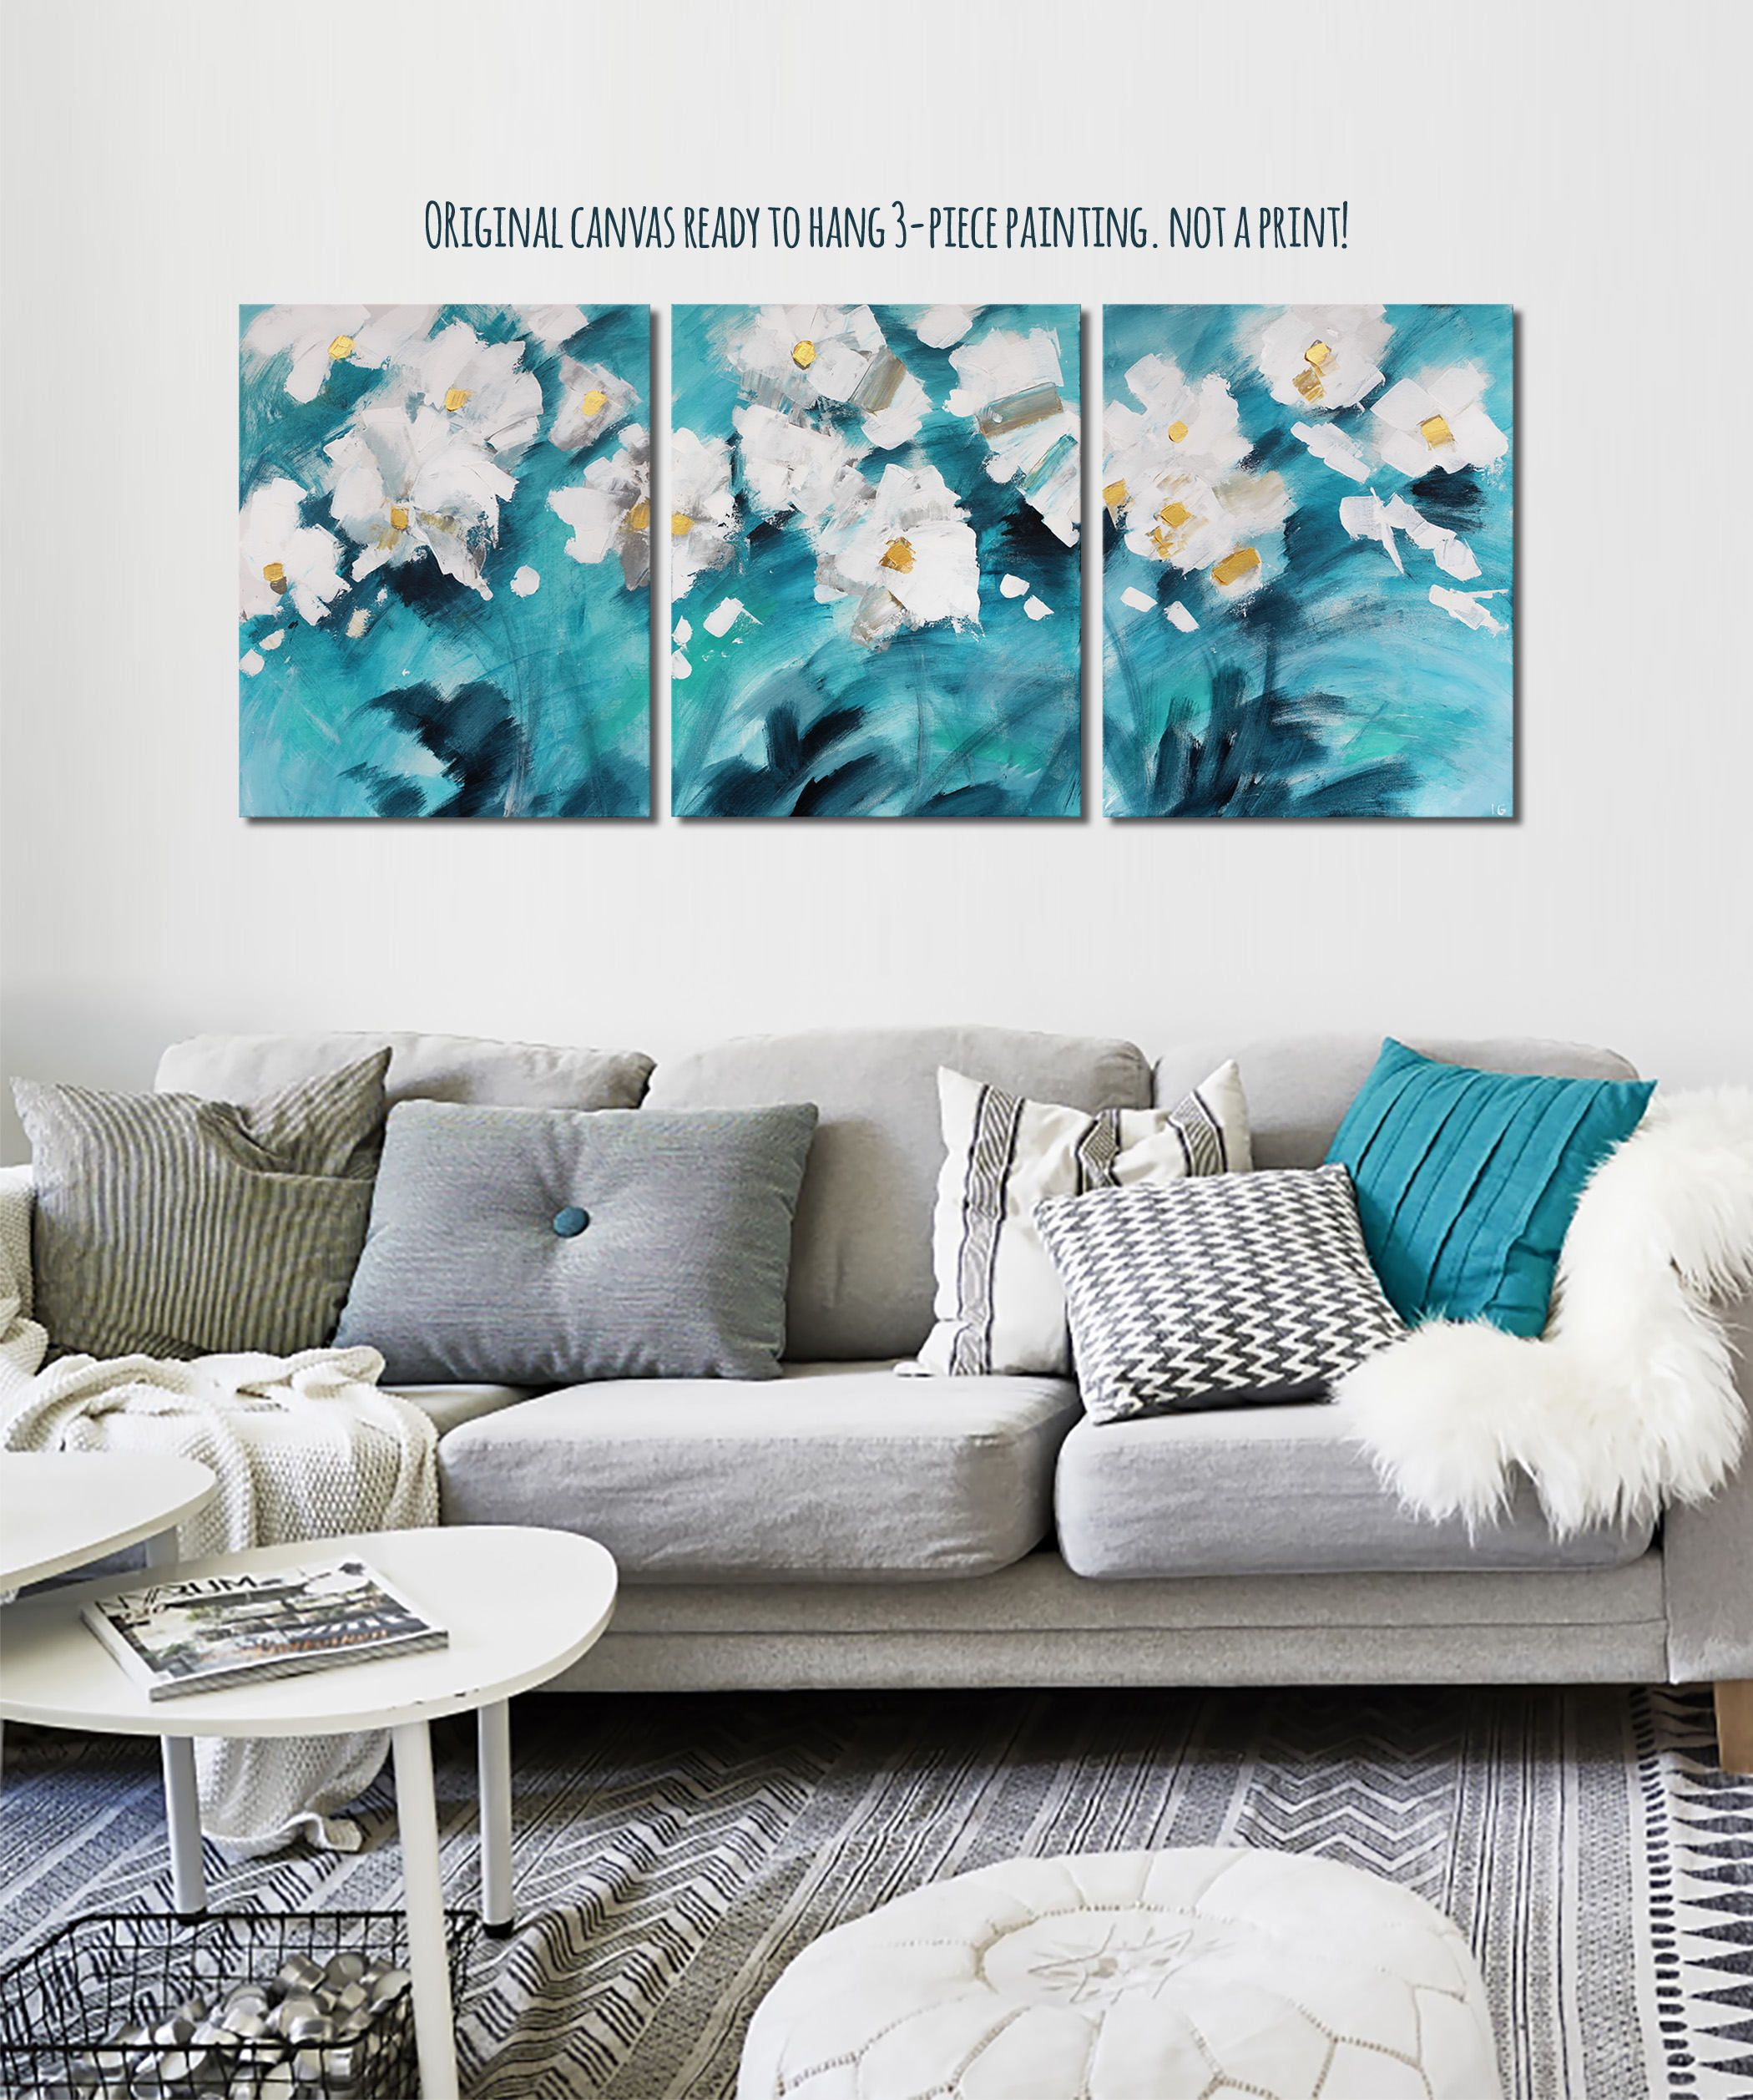 20x48 Teal Canvas Wall Art Teal And Gold Decor Turquoise Etsy Teal Wall Art Tree Painting Turquoise Wall Art